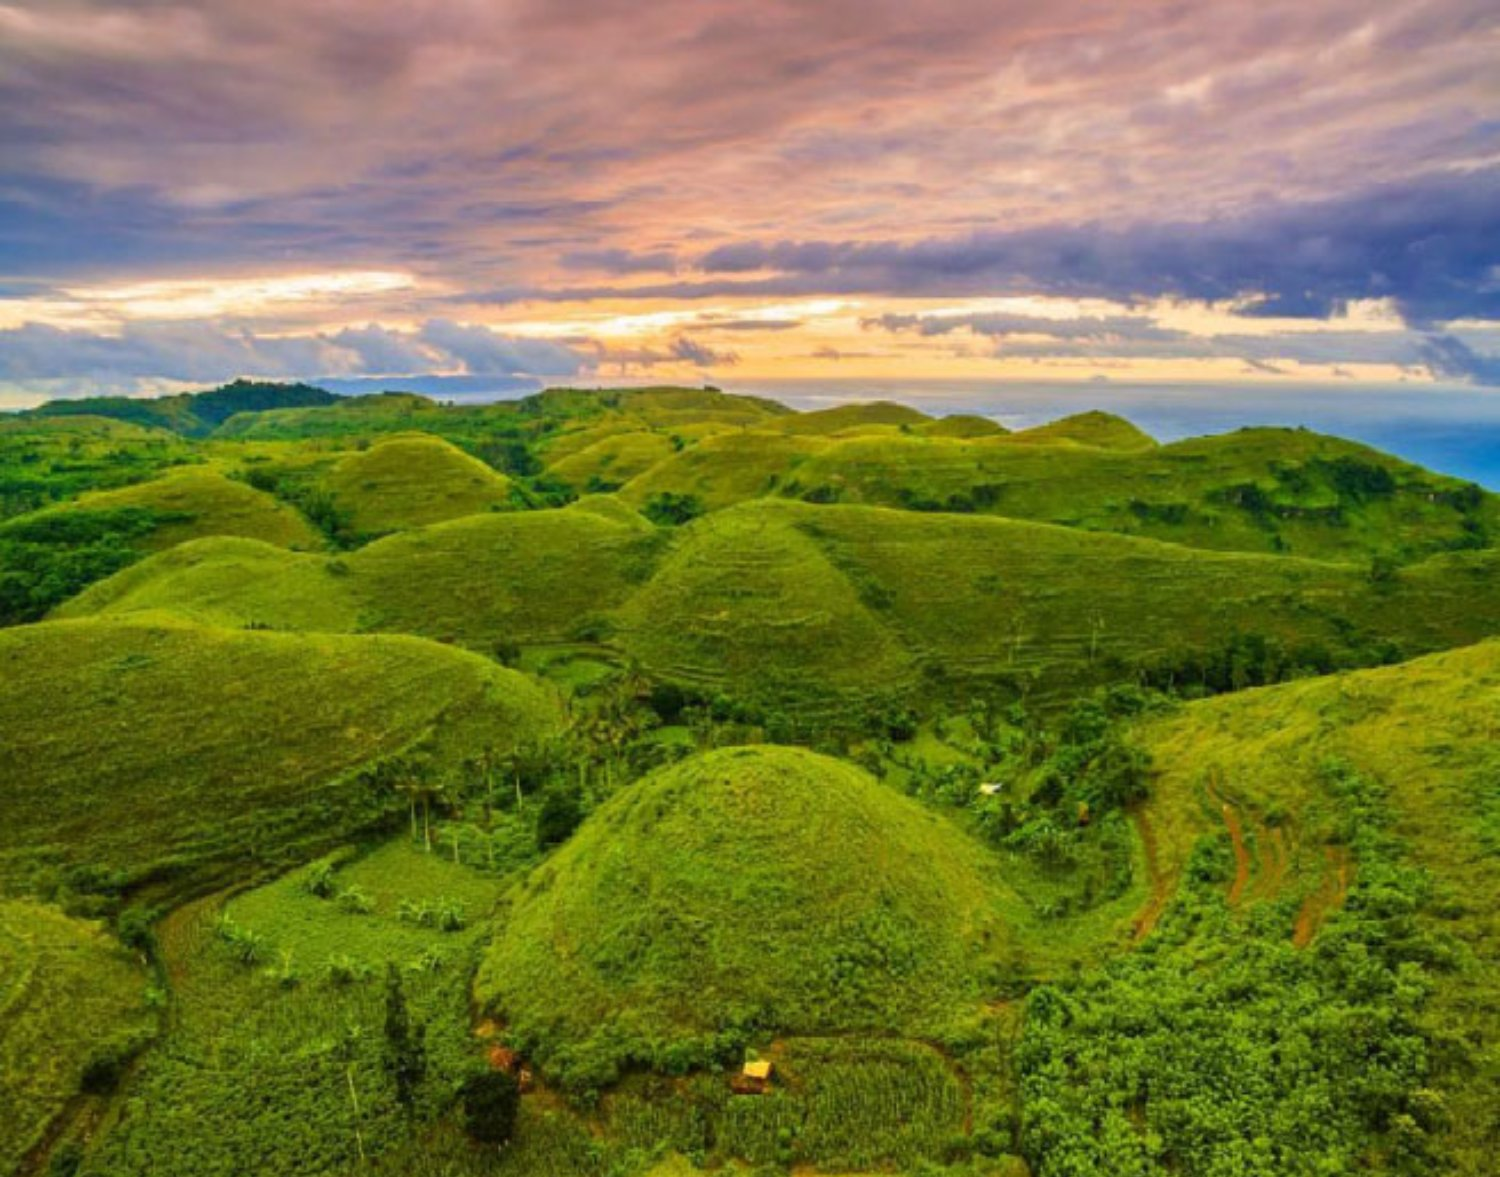 Telletubbies Hill in Nusa Penida